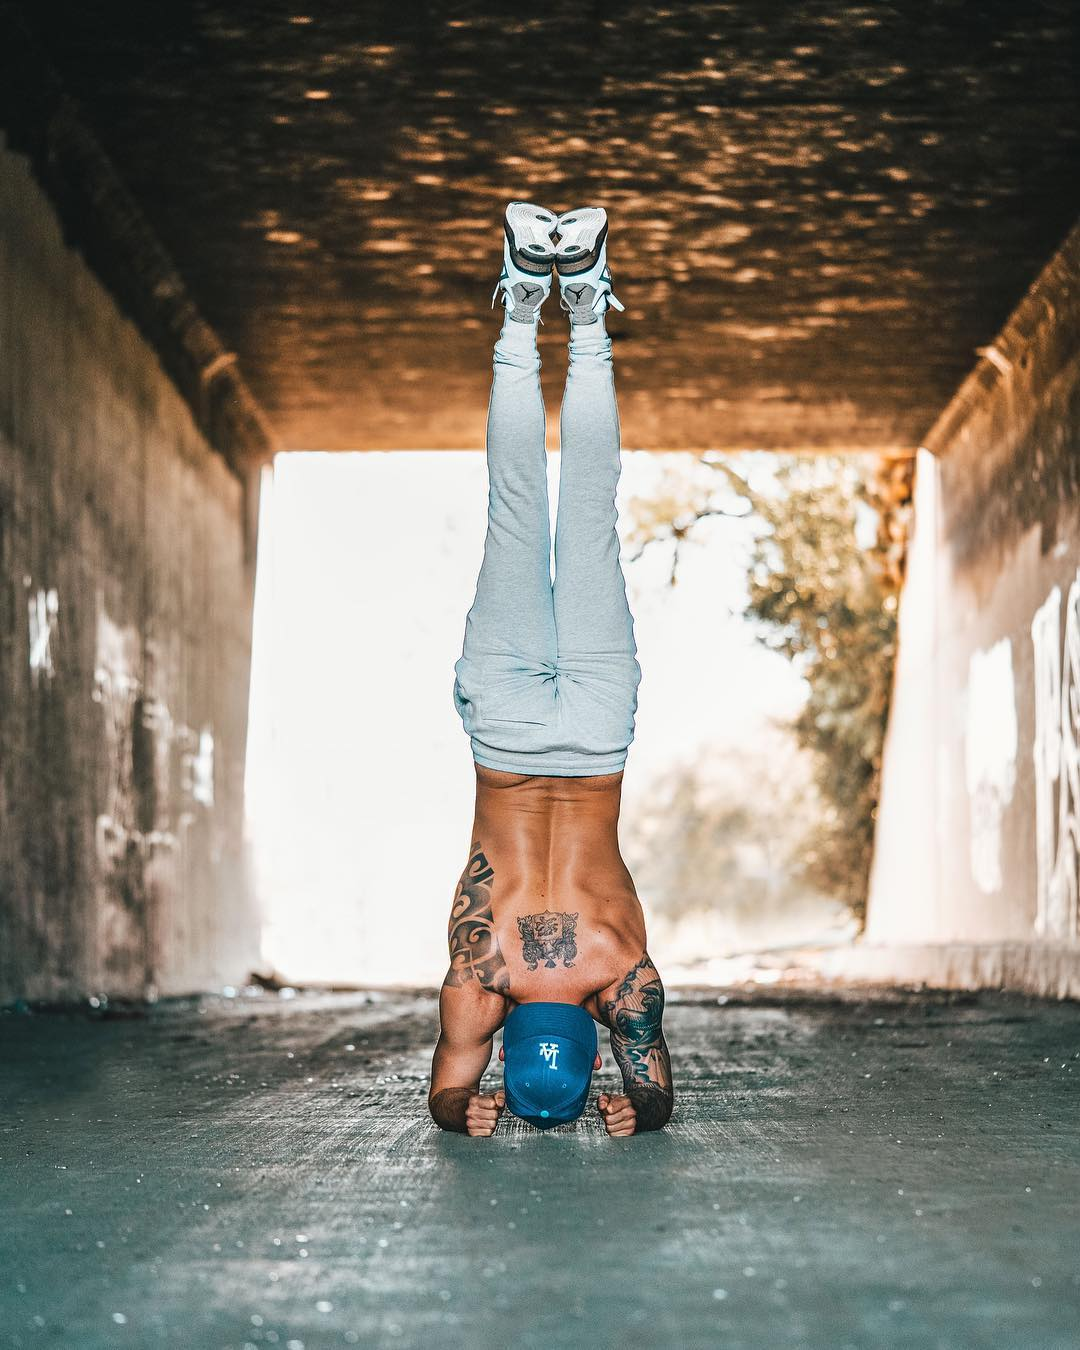 A long-distance is any Uber ride over $20 - Calvin Corzine Yoga